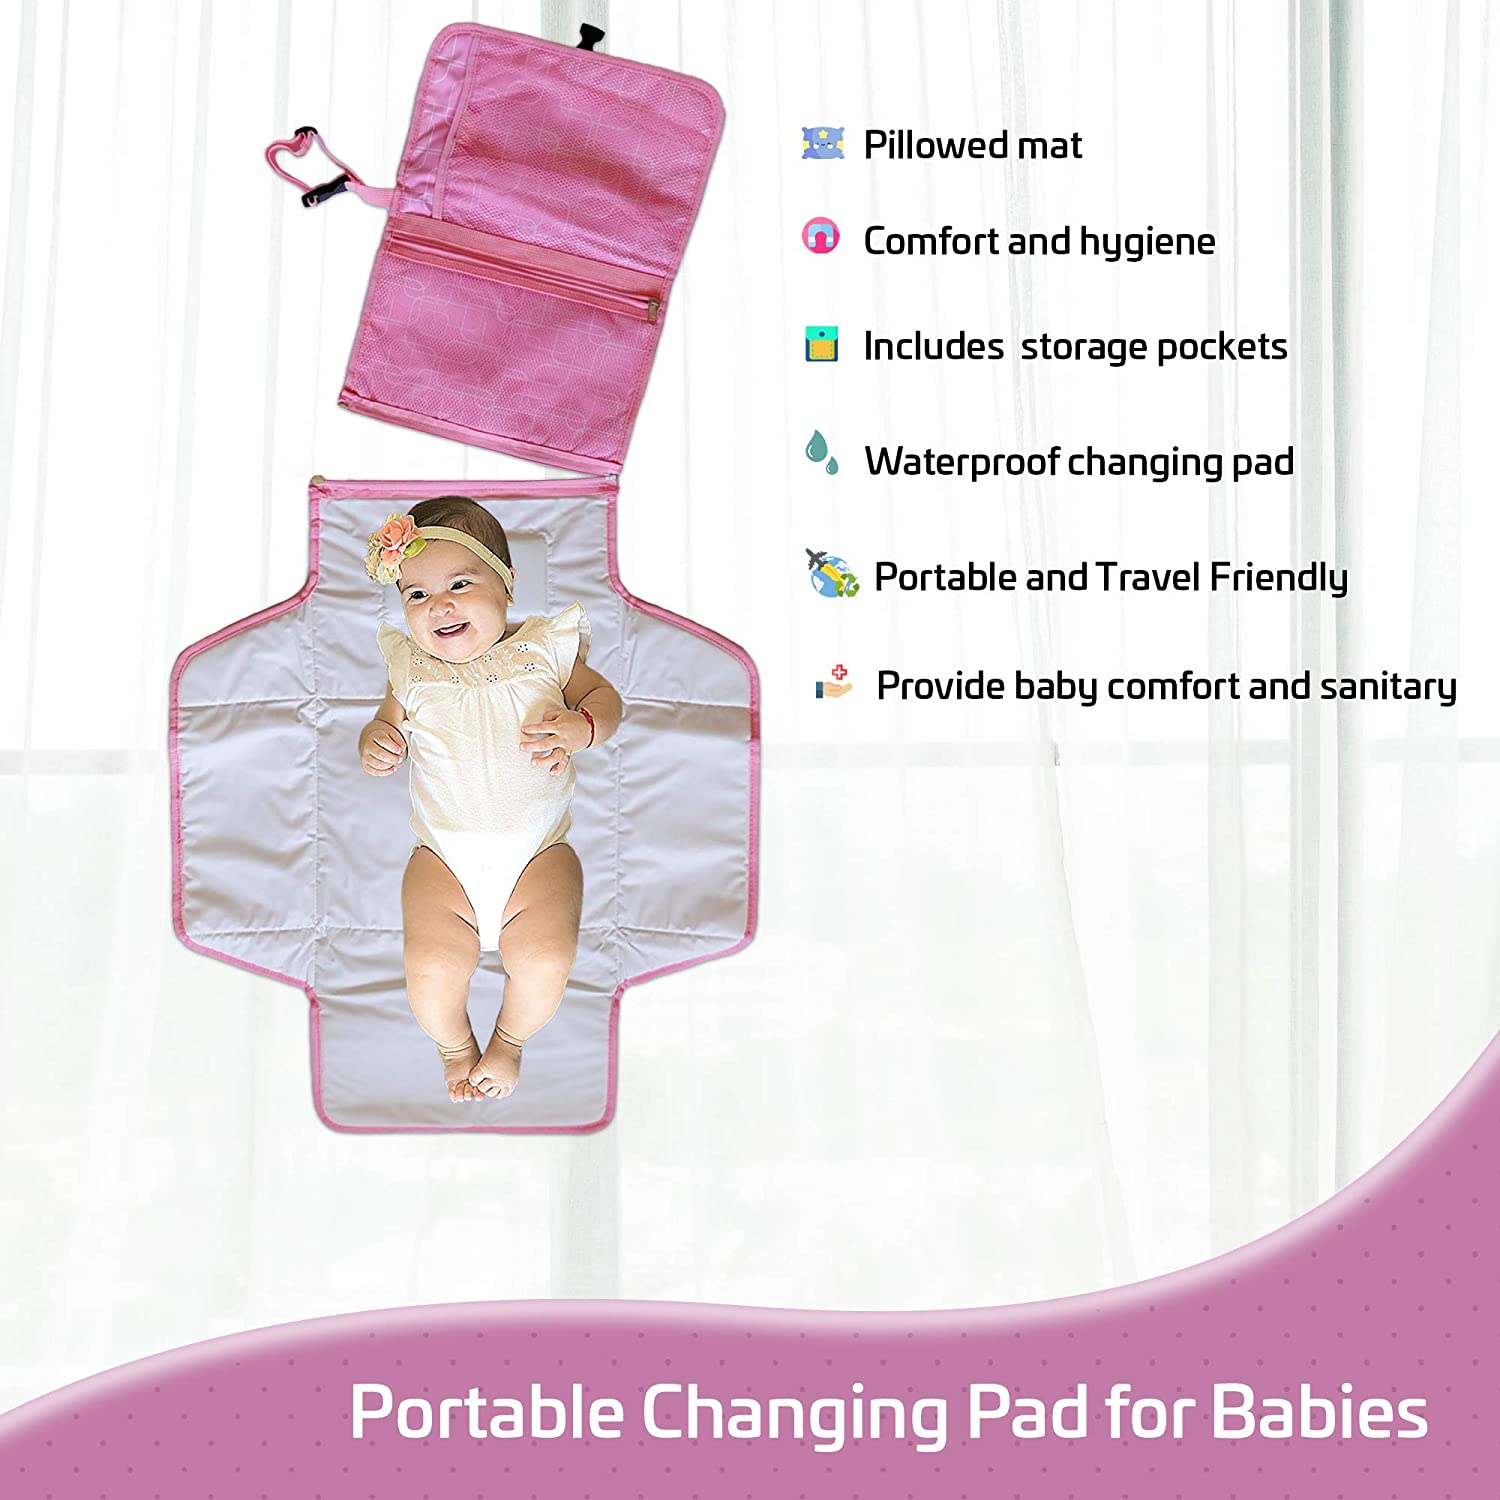 KM Collection Baby Portable Quick Changing Table Pad, Diaper Bag, Foldable Waterproof Travel Mat with Built-in Head Cushion, Newborn Baby Essentials, Baby Shower Gifts (Pink Color)